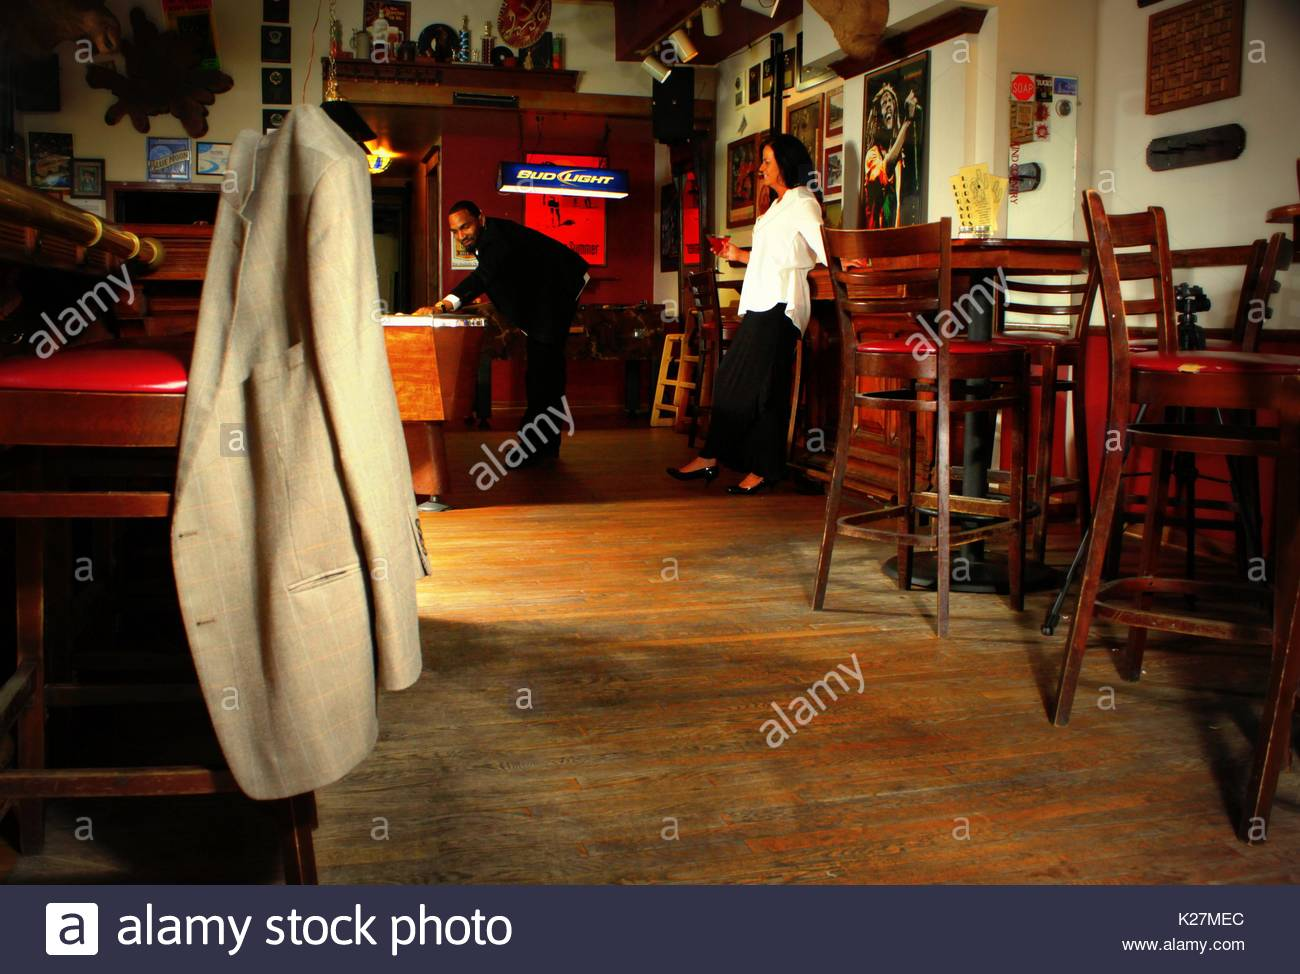 Suit jacket hanging on the back of a bar chair (as if left behind) - Stock Image